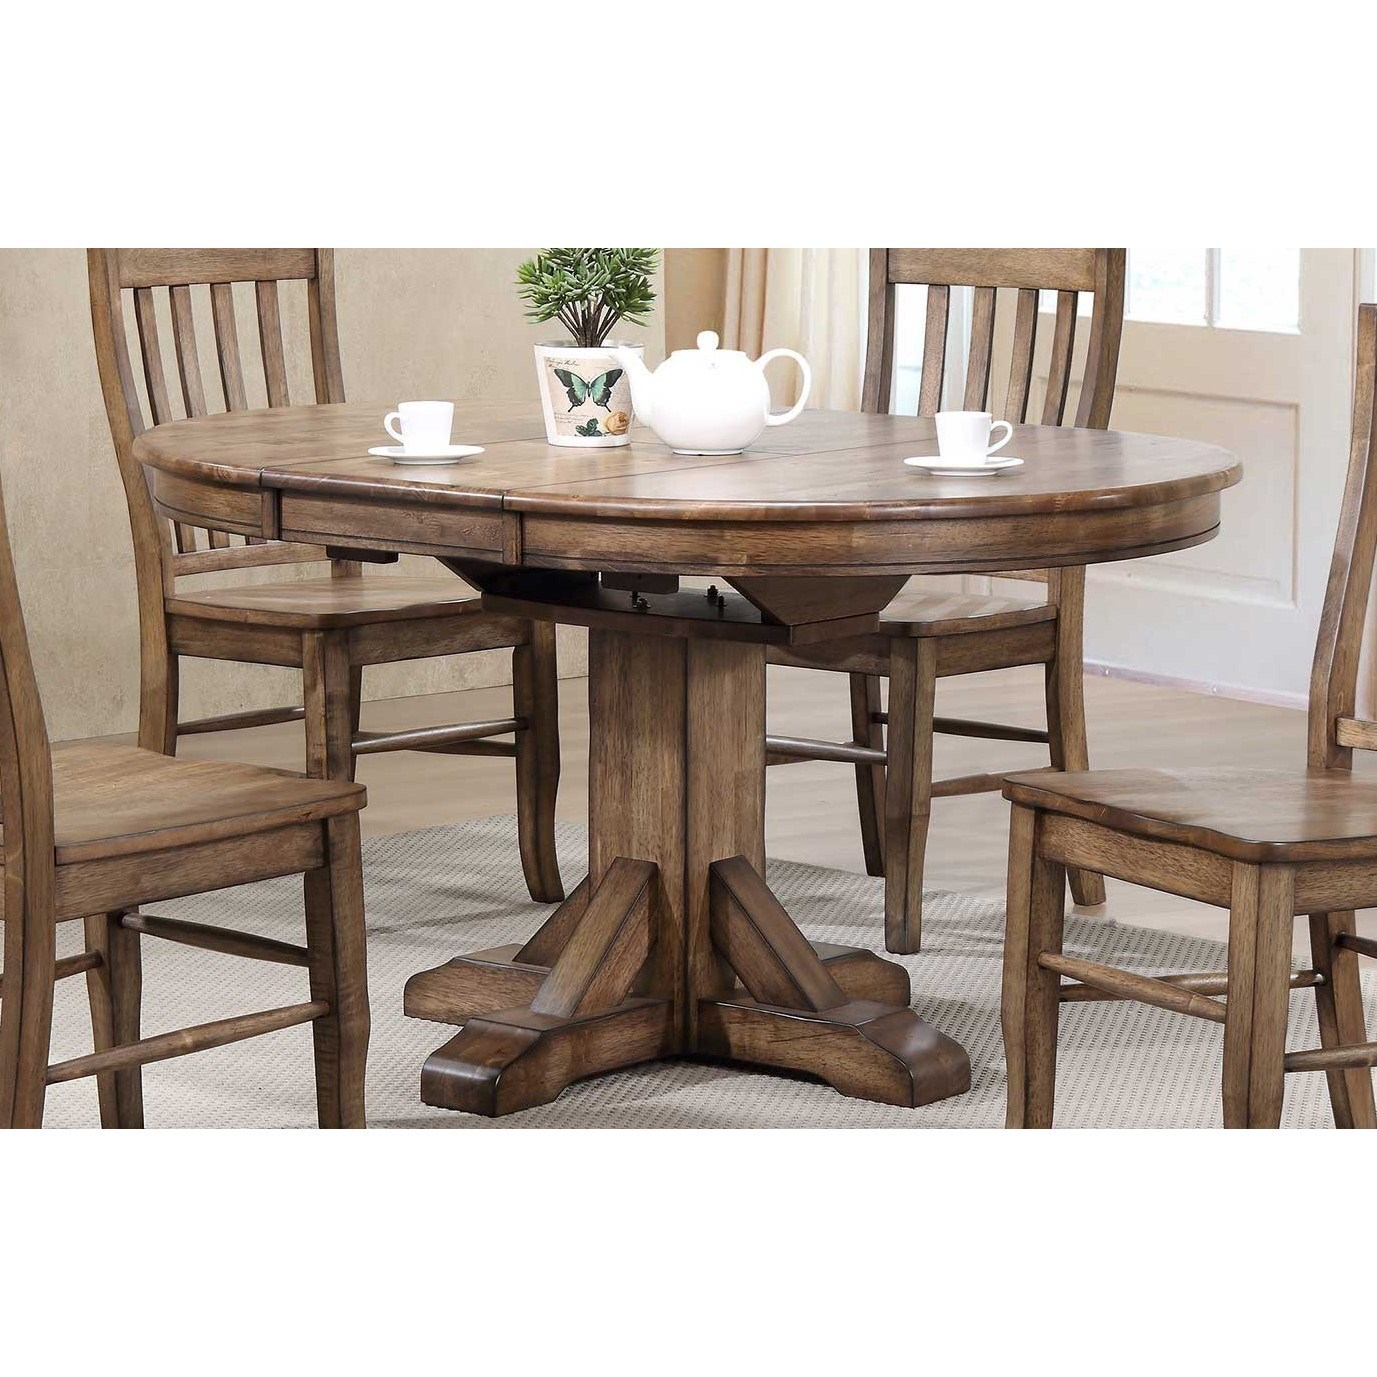 Carmel Pedestal Dining Table by Winners Only at Crowley Furniture & Mattress